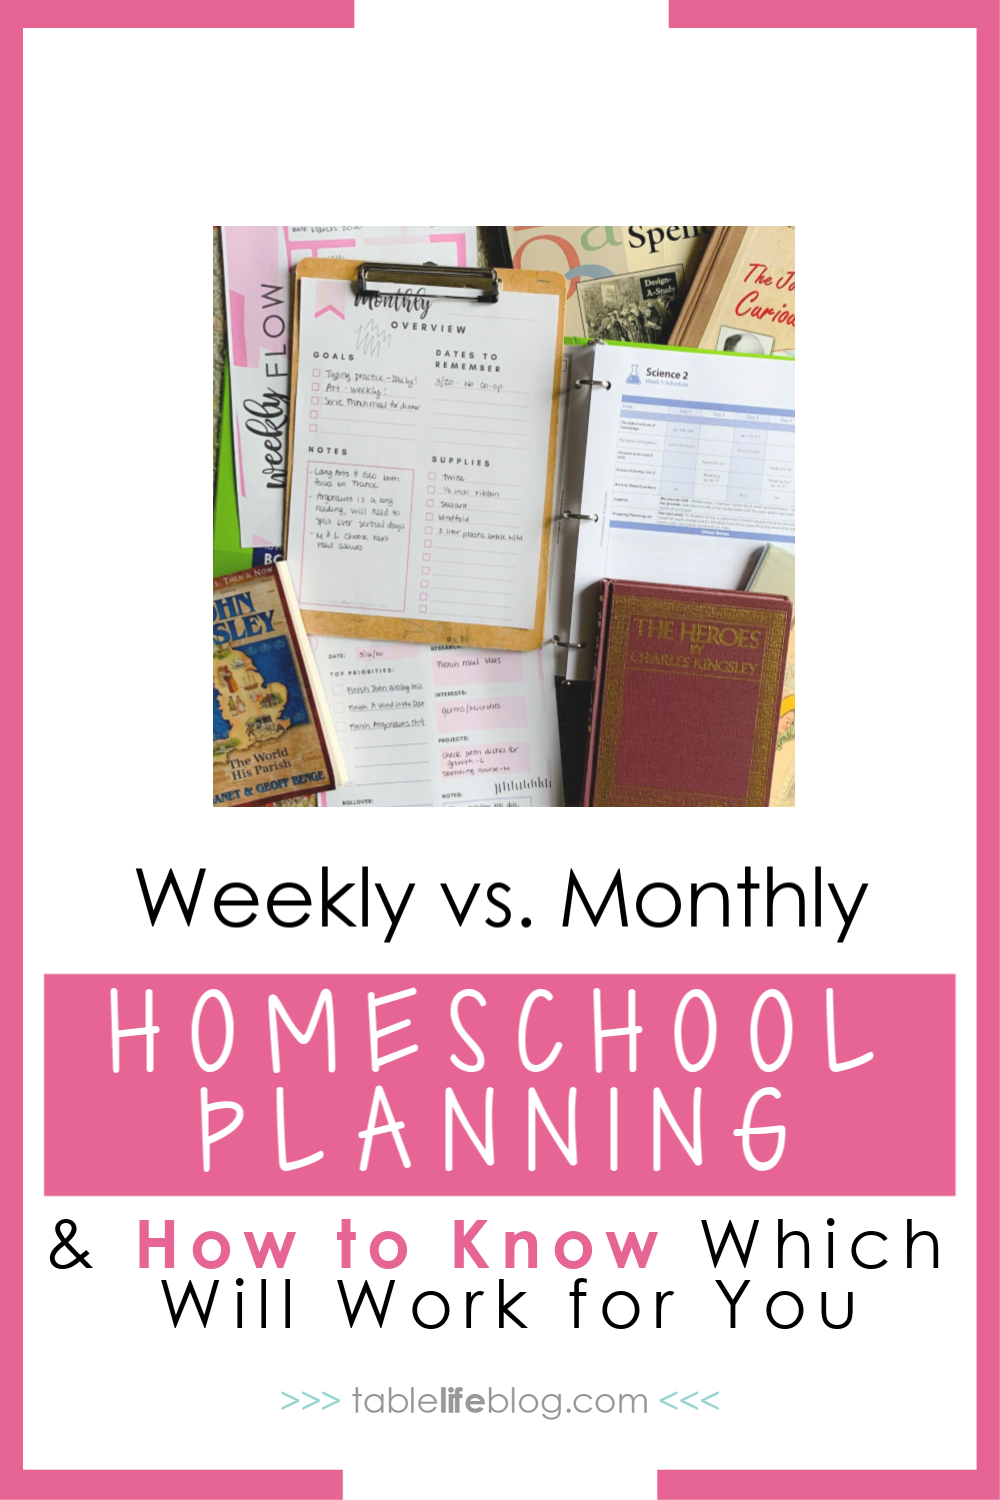 Not sure how far in advance to plan your homeschooling routine? Here's an overview of weekly and monthly homeschool planning and how to know which one will serve you better.